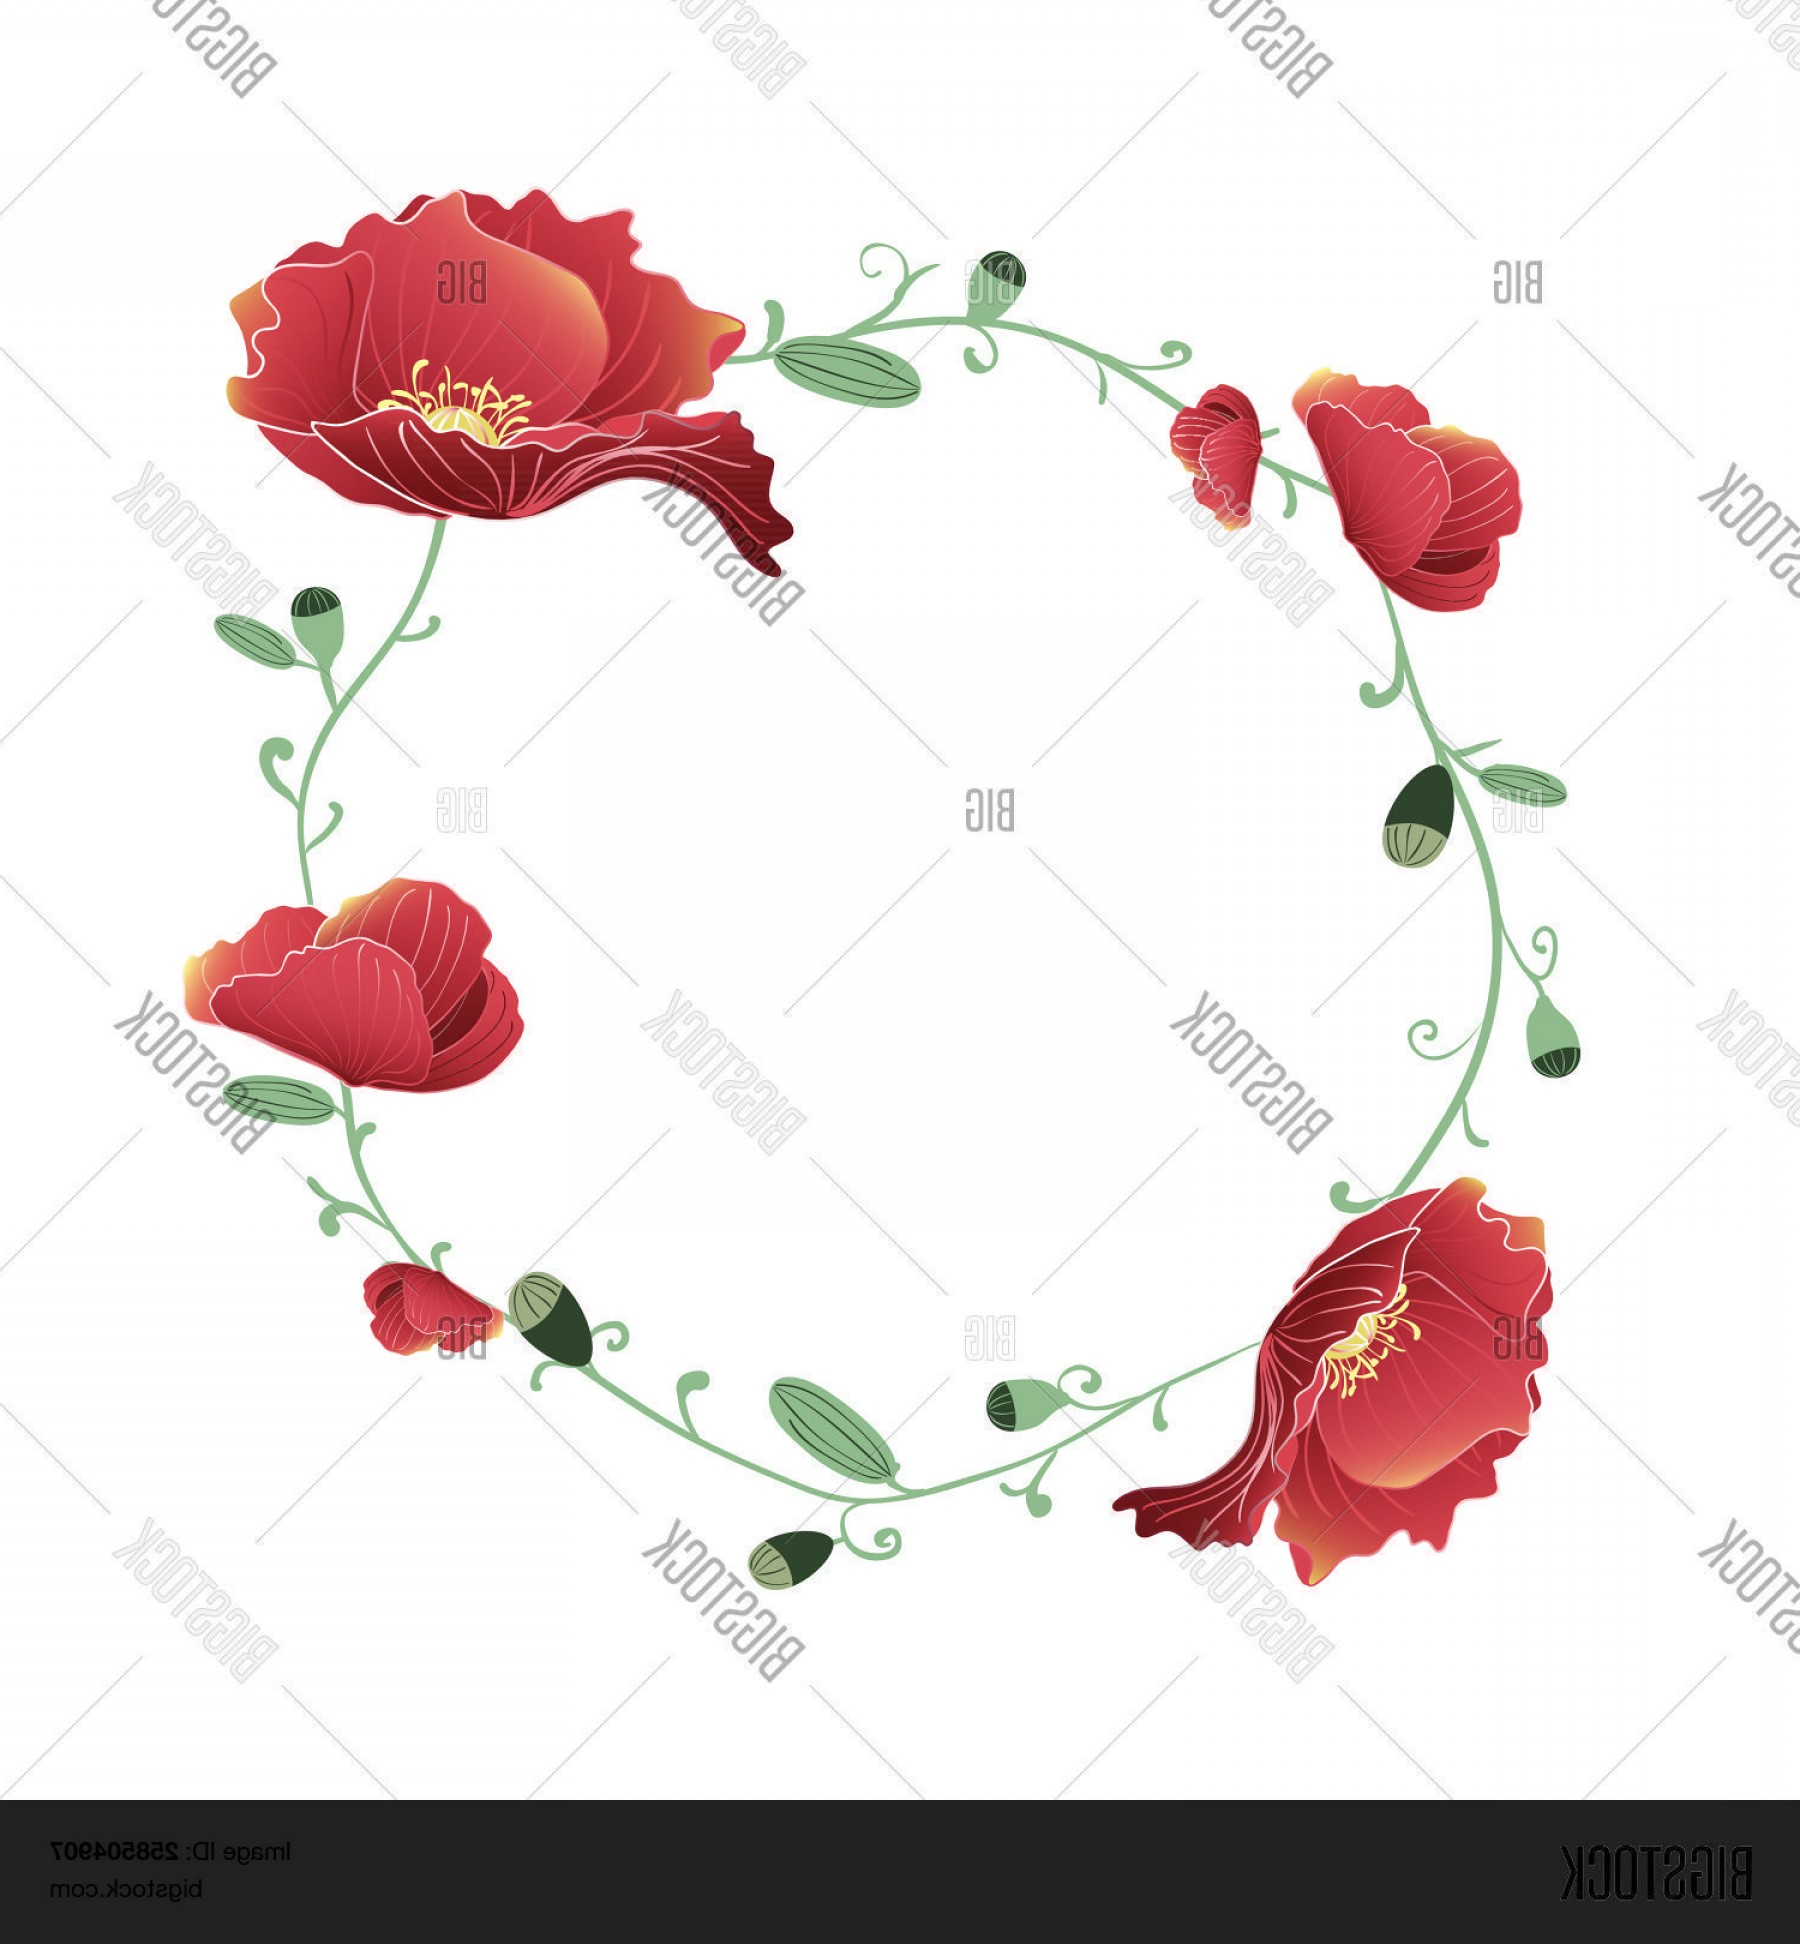 Vector Image Of A Budding Flower: Stock Vector Blooming And Budding Red Poppy Flowers Wreath